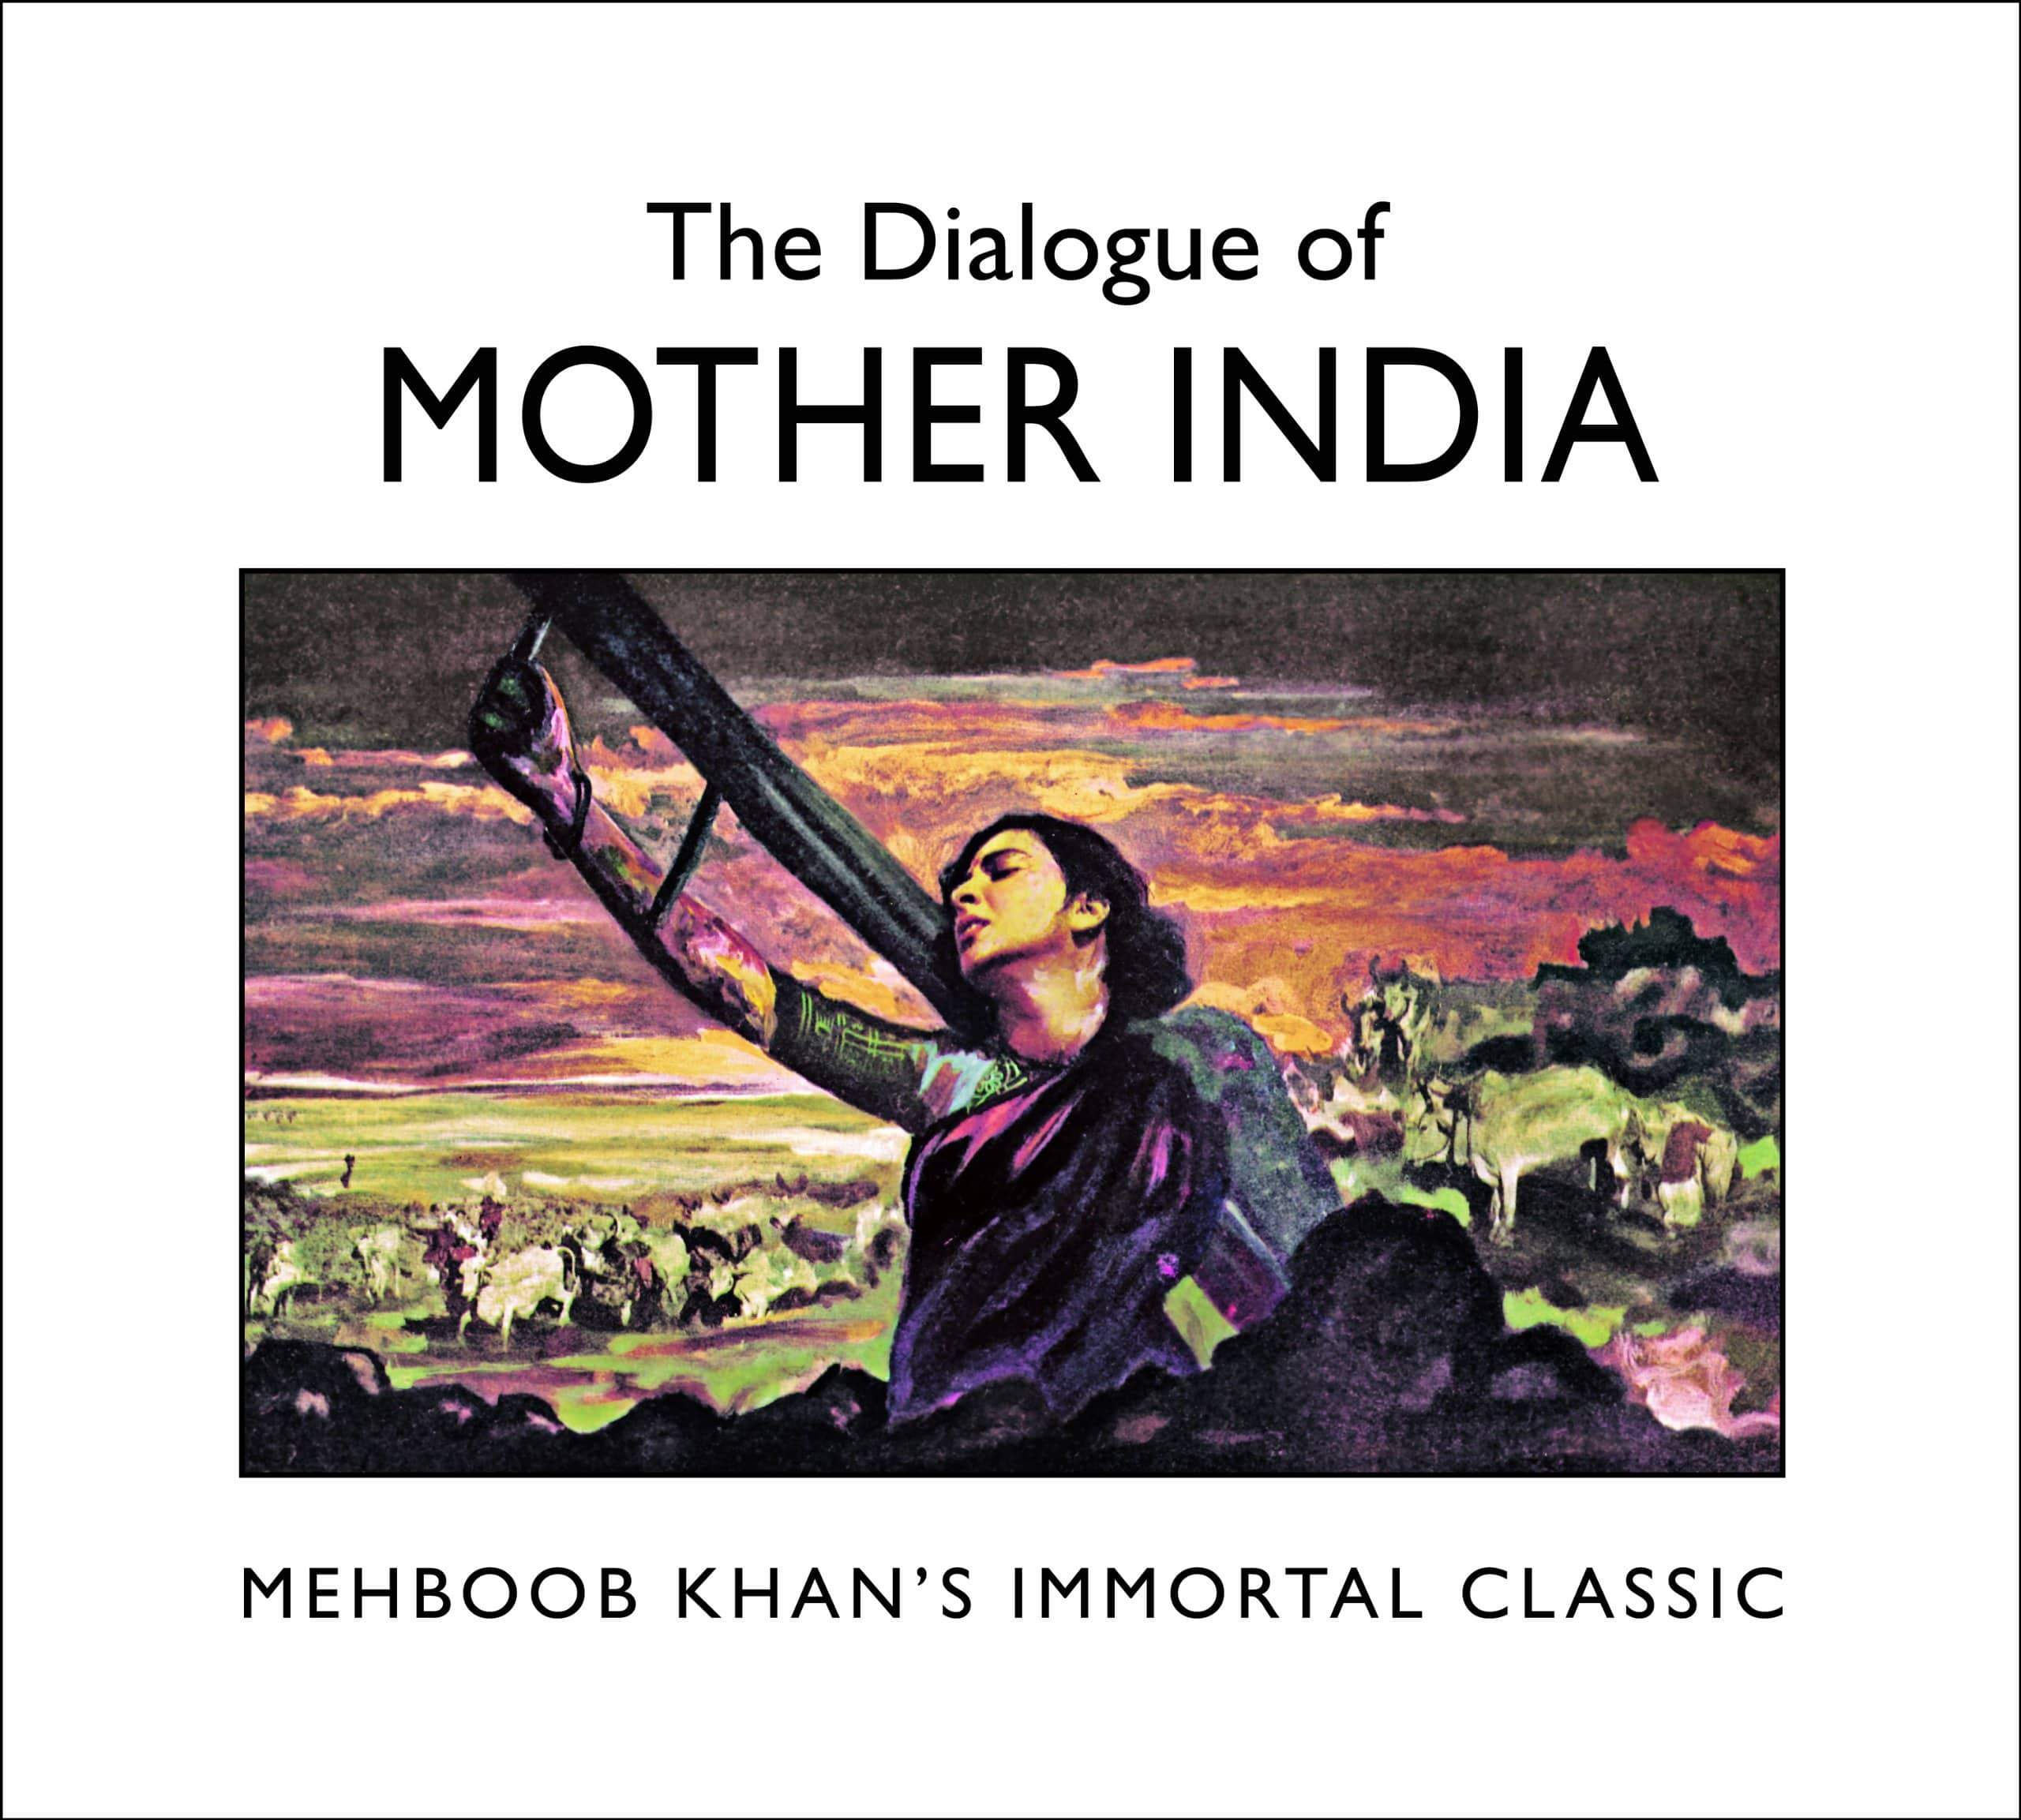 The Dialogue of Mother India